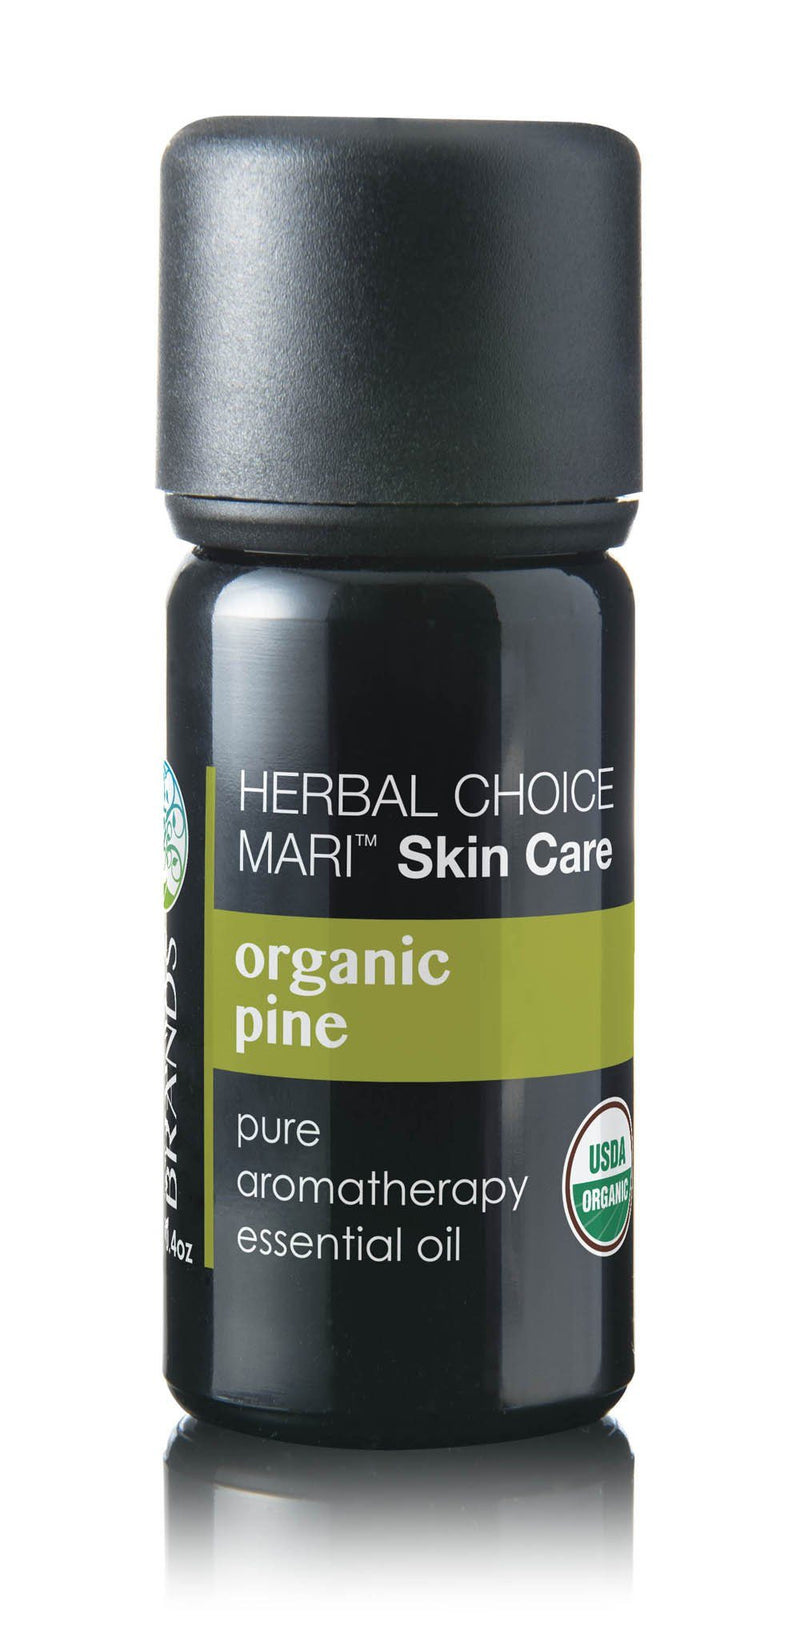 Herbal Choice Mari Organic Pine Essential Oil; 0.3floz Glass - Herbal Choice Mari Organic Pine Essential Oil; 0.3floz Glass - Herbal Choice Mari Organic Pine Essential Oil; 0.3floz Glass